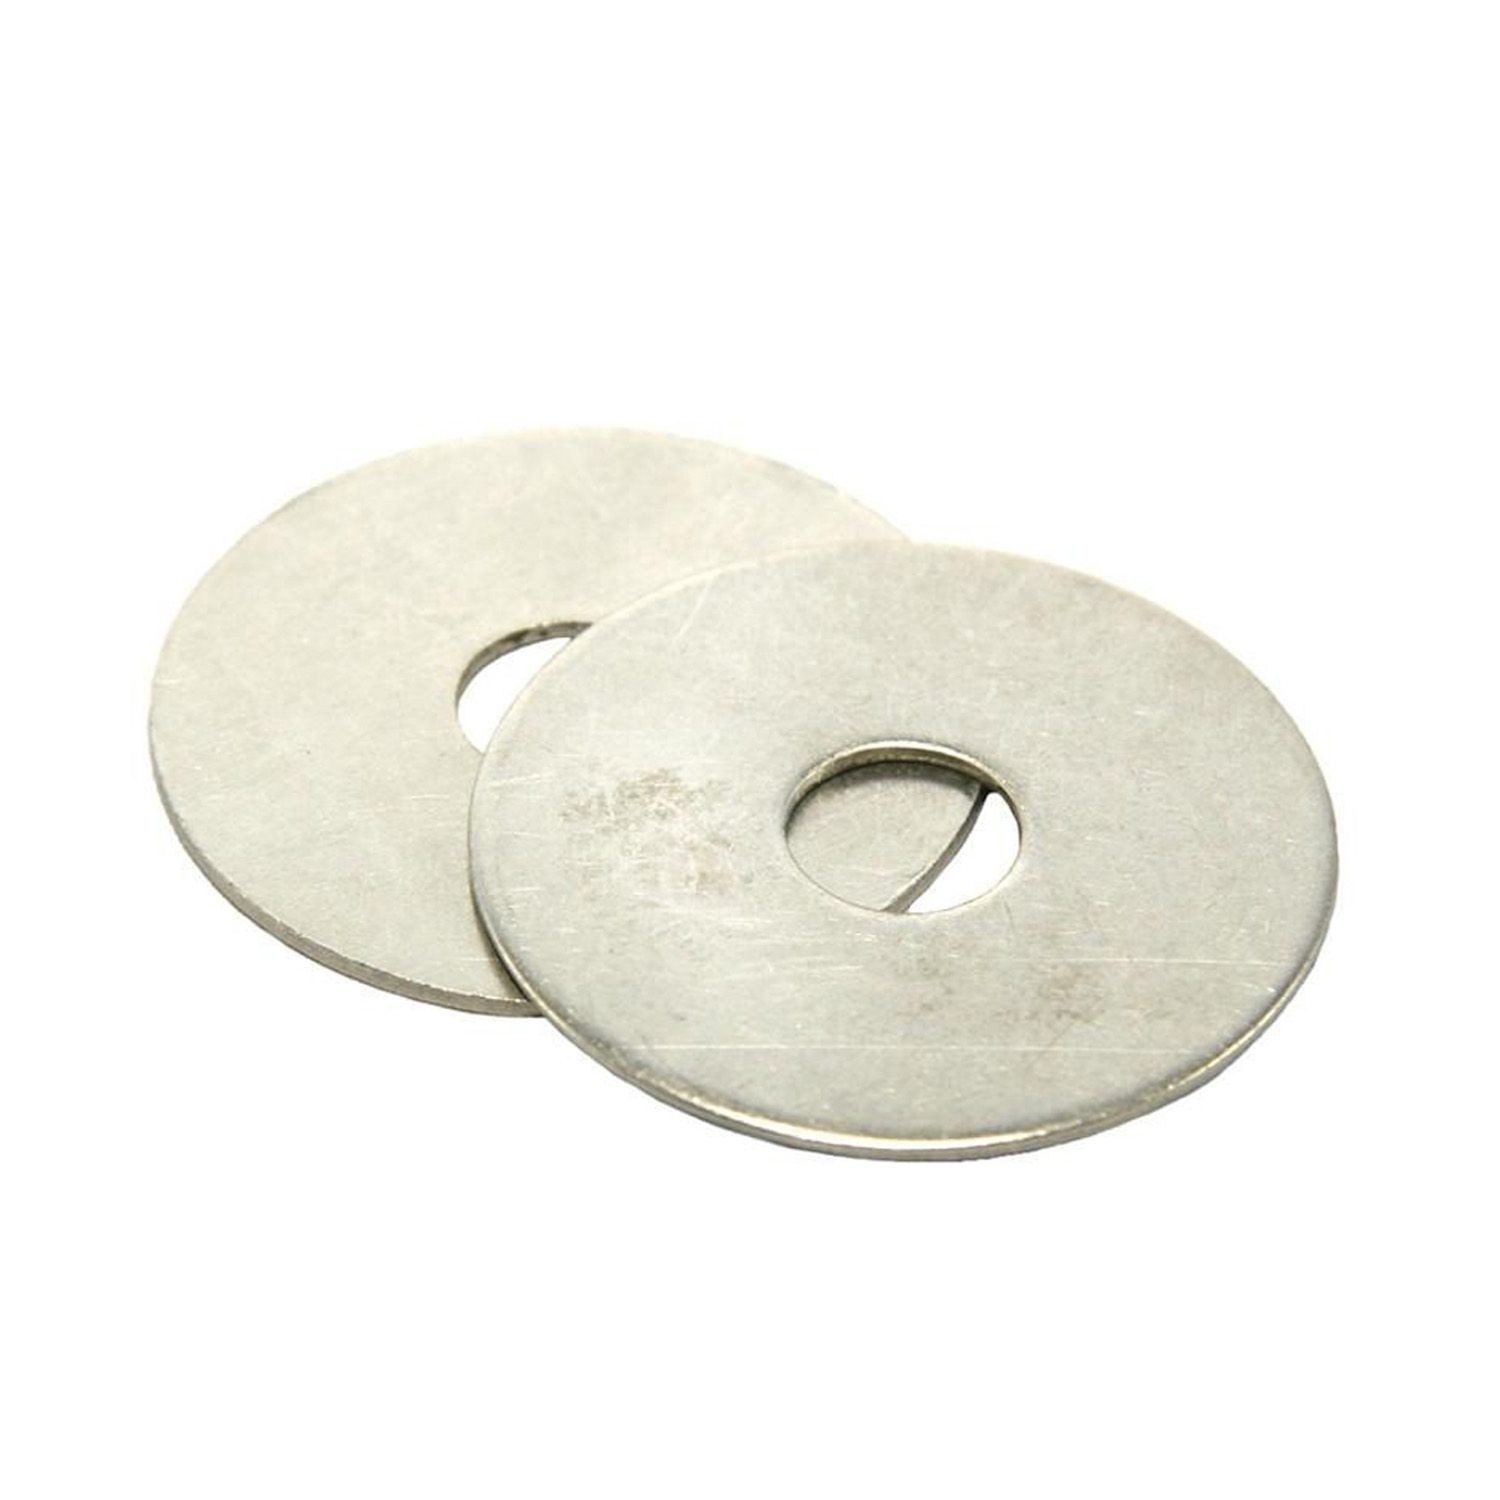 "#10 x 3/4"" Stainless Steel Fender Washer 18-8"